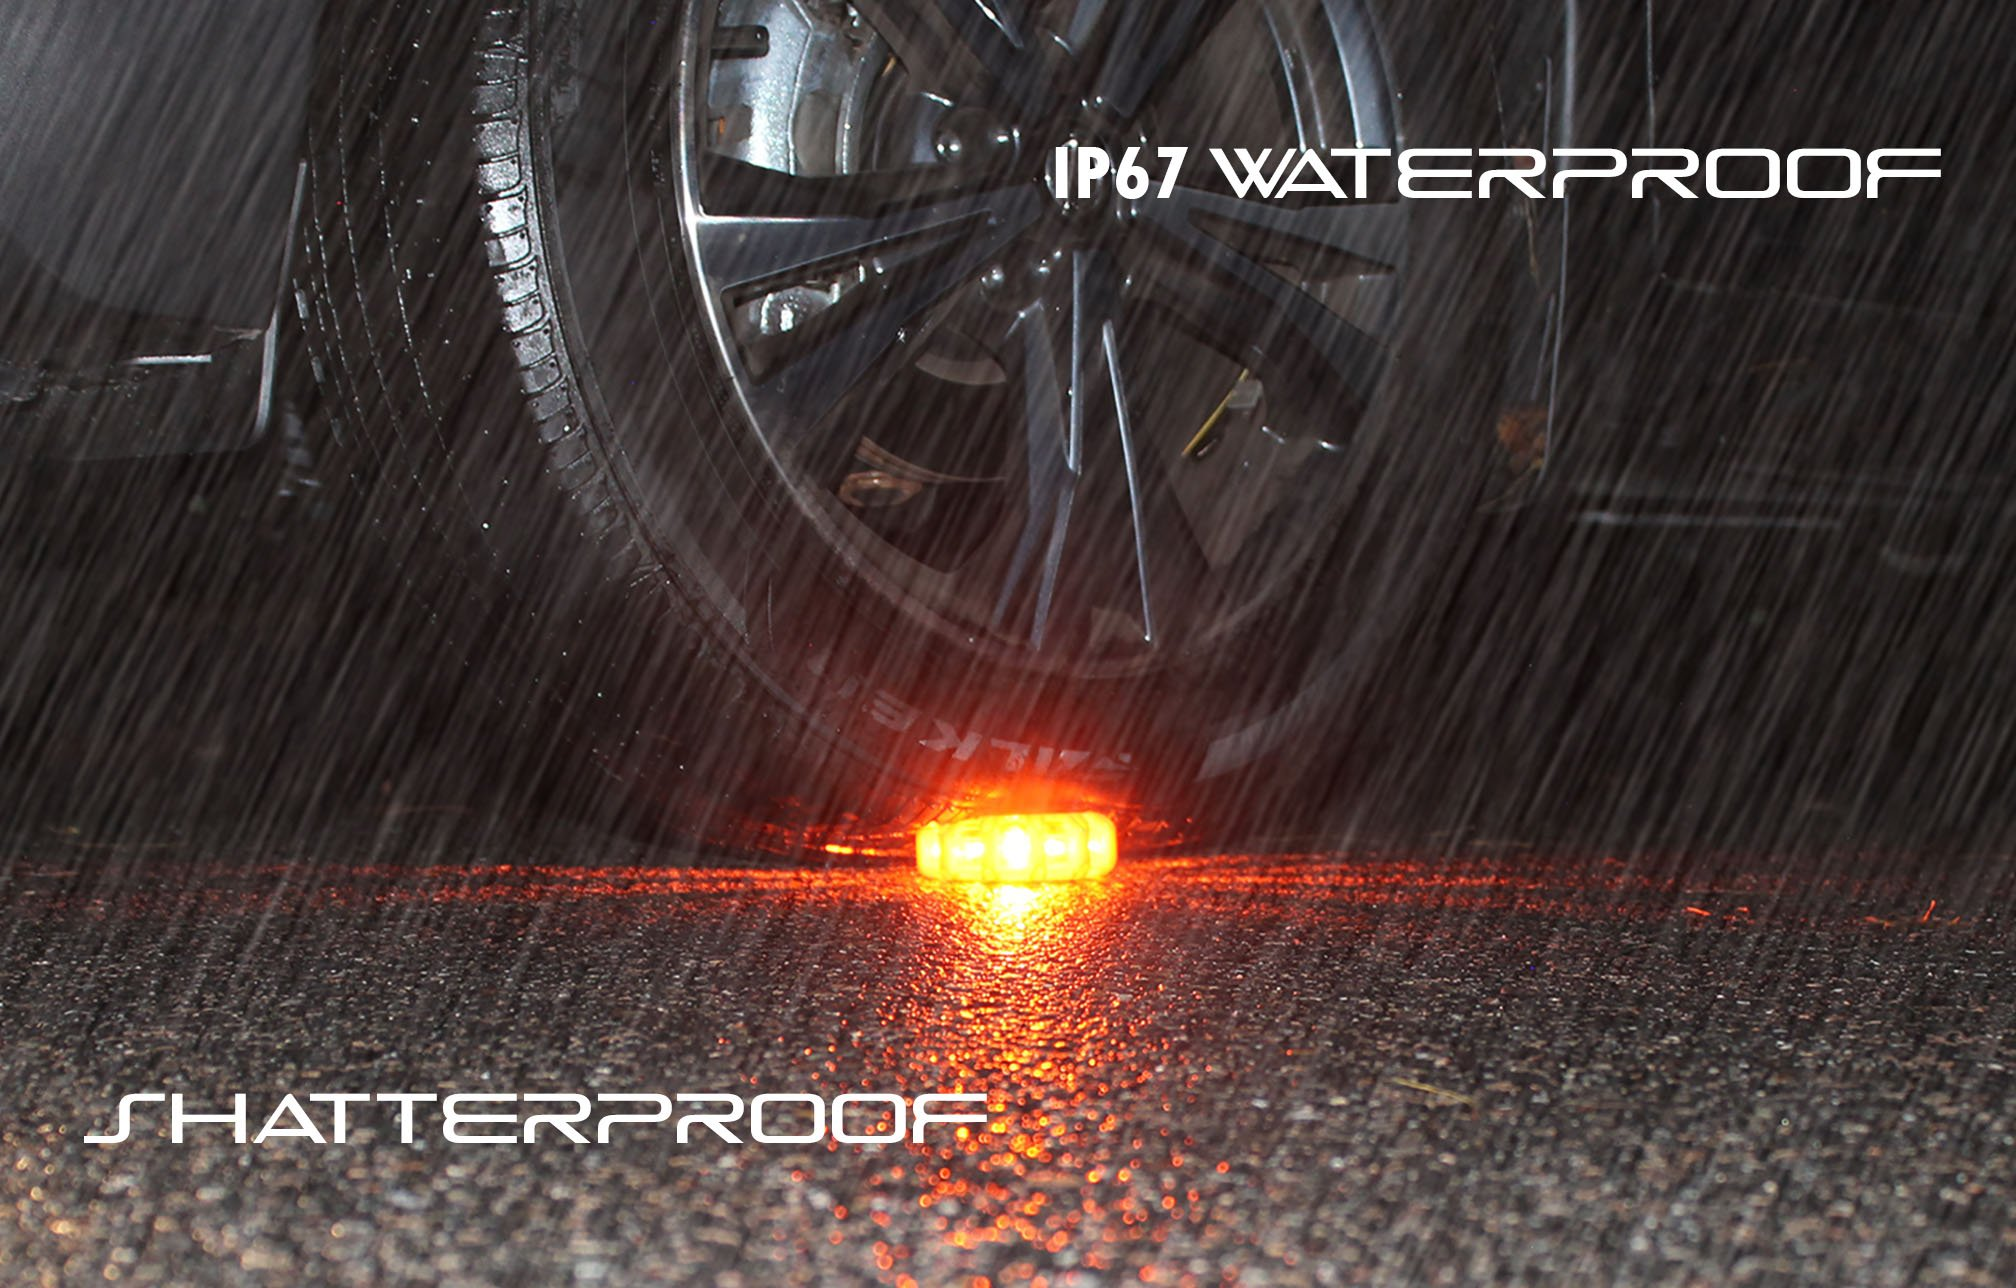 LED Road Flare | Emergency Roadside Safety Disc Marine Flashing Light Beacon for Car Truck Boat with Storage Bag and Batteries | New 2018 Kit (Pack of 3) by OMEGAWARE (Image #3)